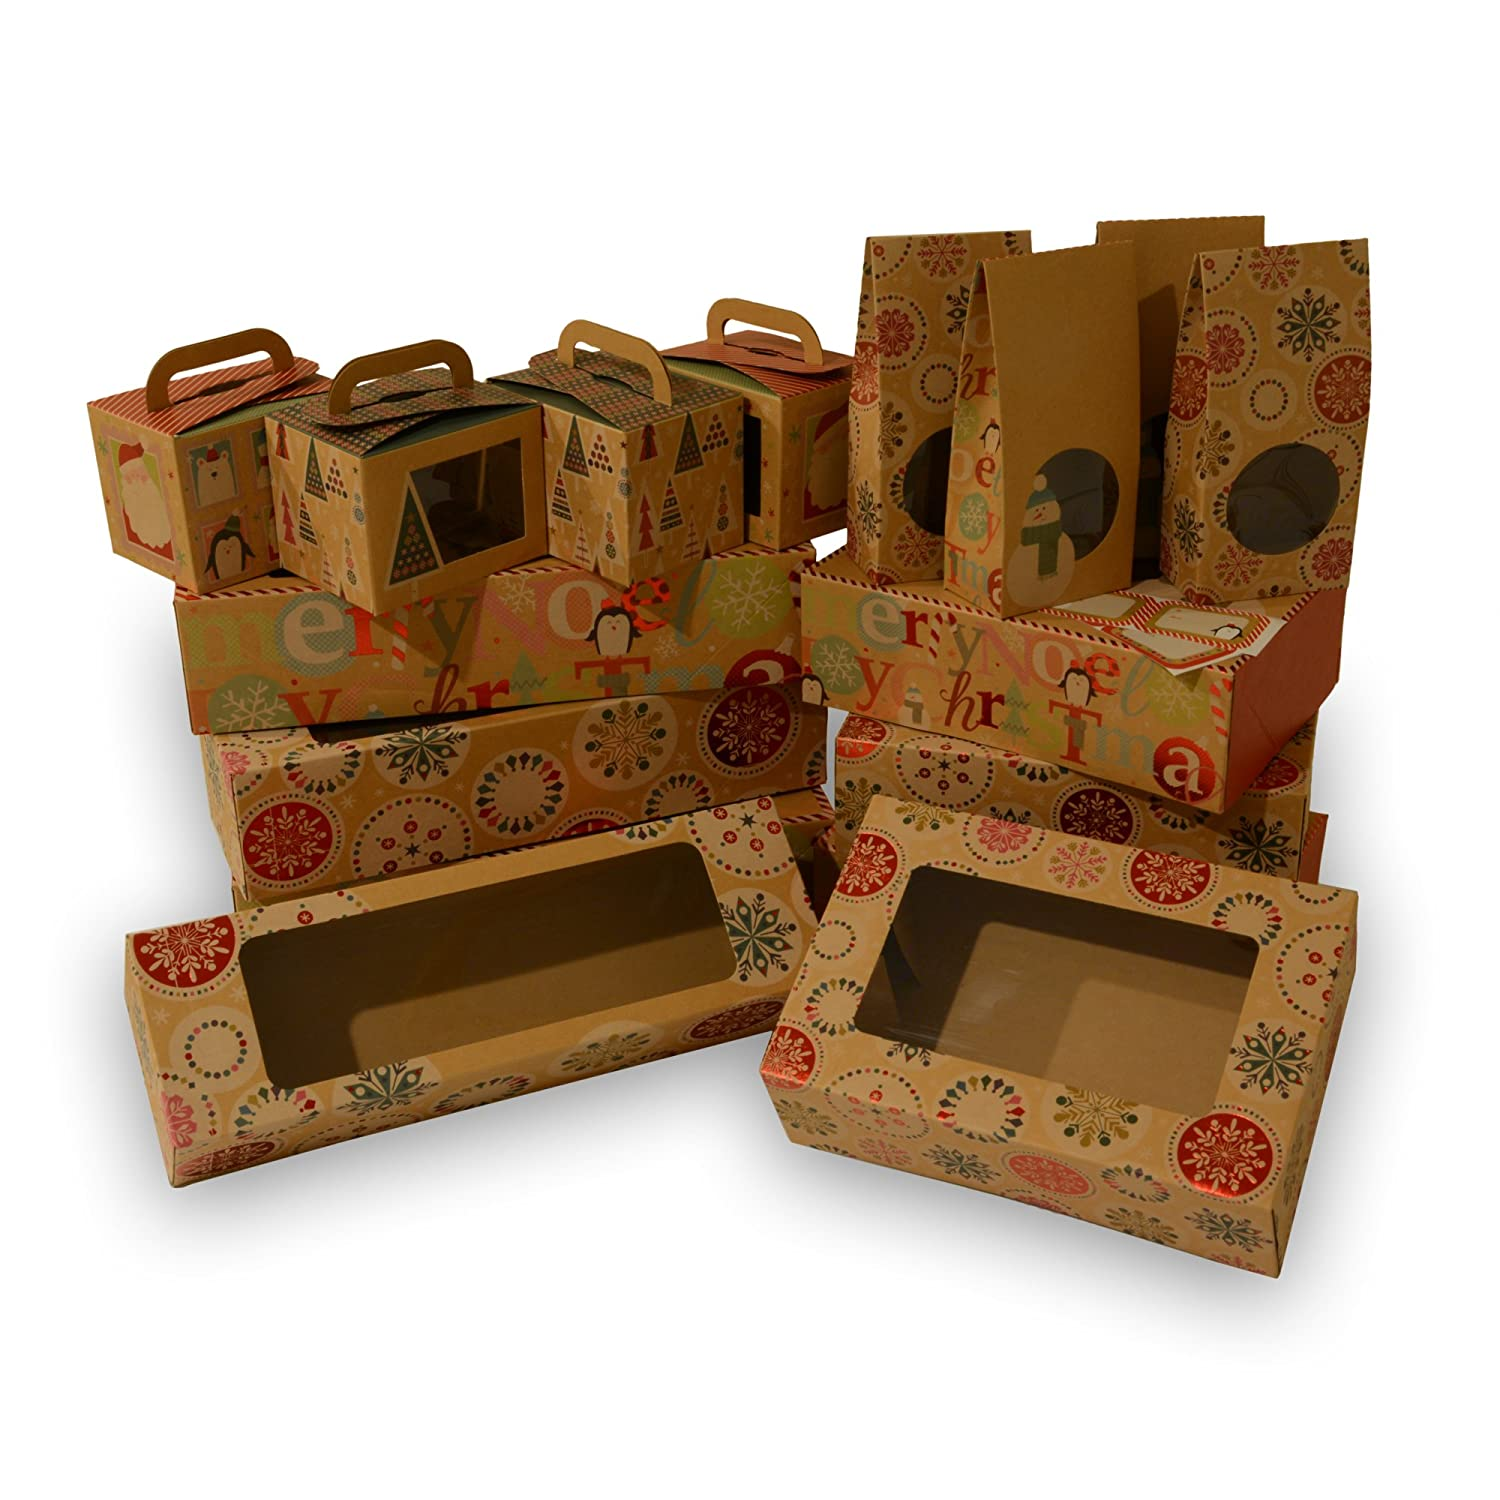 Christmas Cookies Box.Christmas Cookie Box Bakery Set Brown Kraft With Christmas Designs 4 Cupcake Boxes 4 Doughnut Boxes